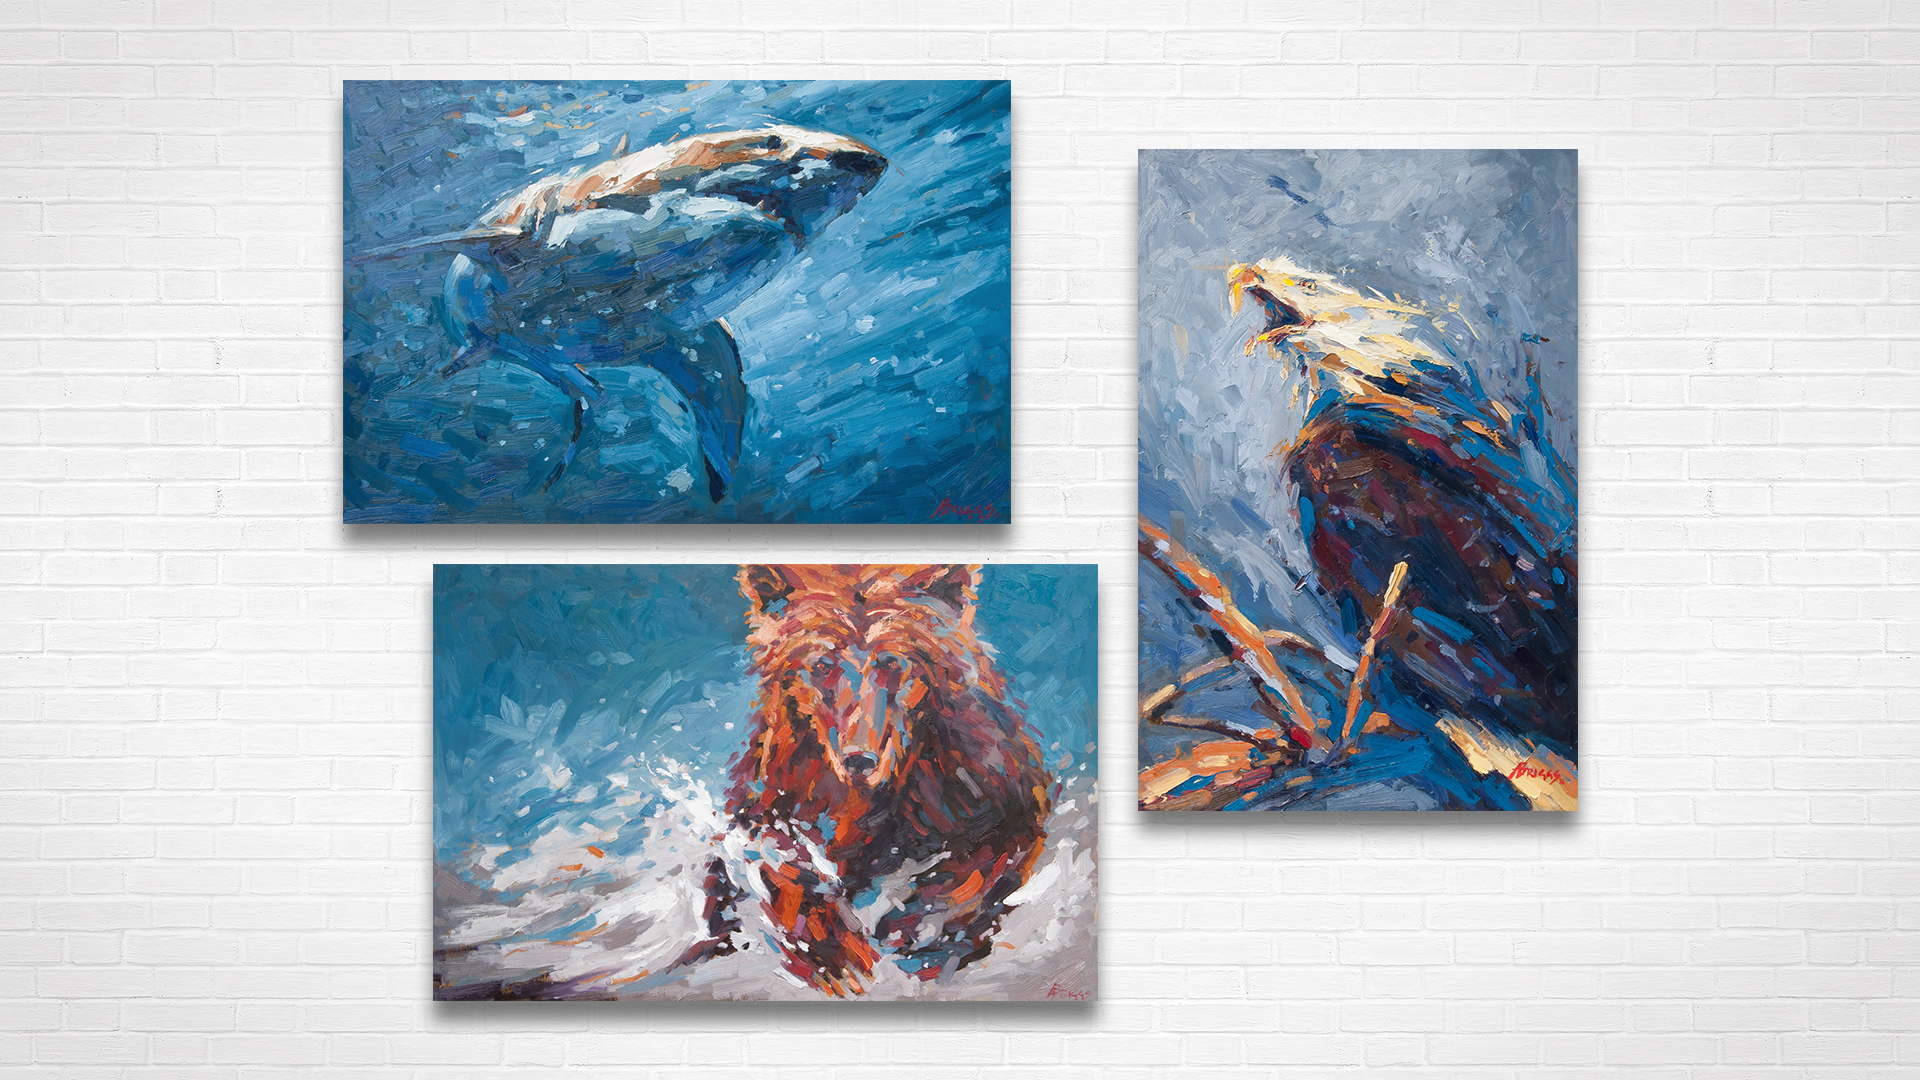 West Coast Wild: Oil painting series